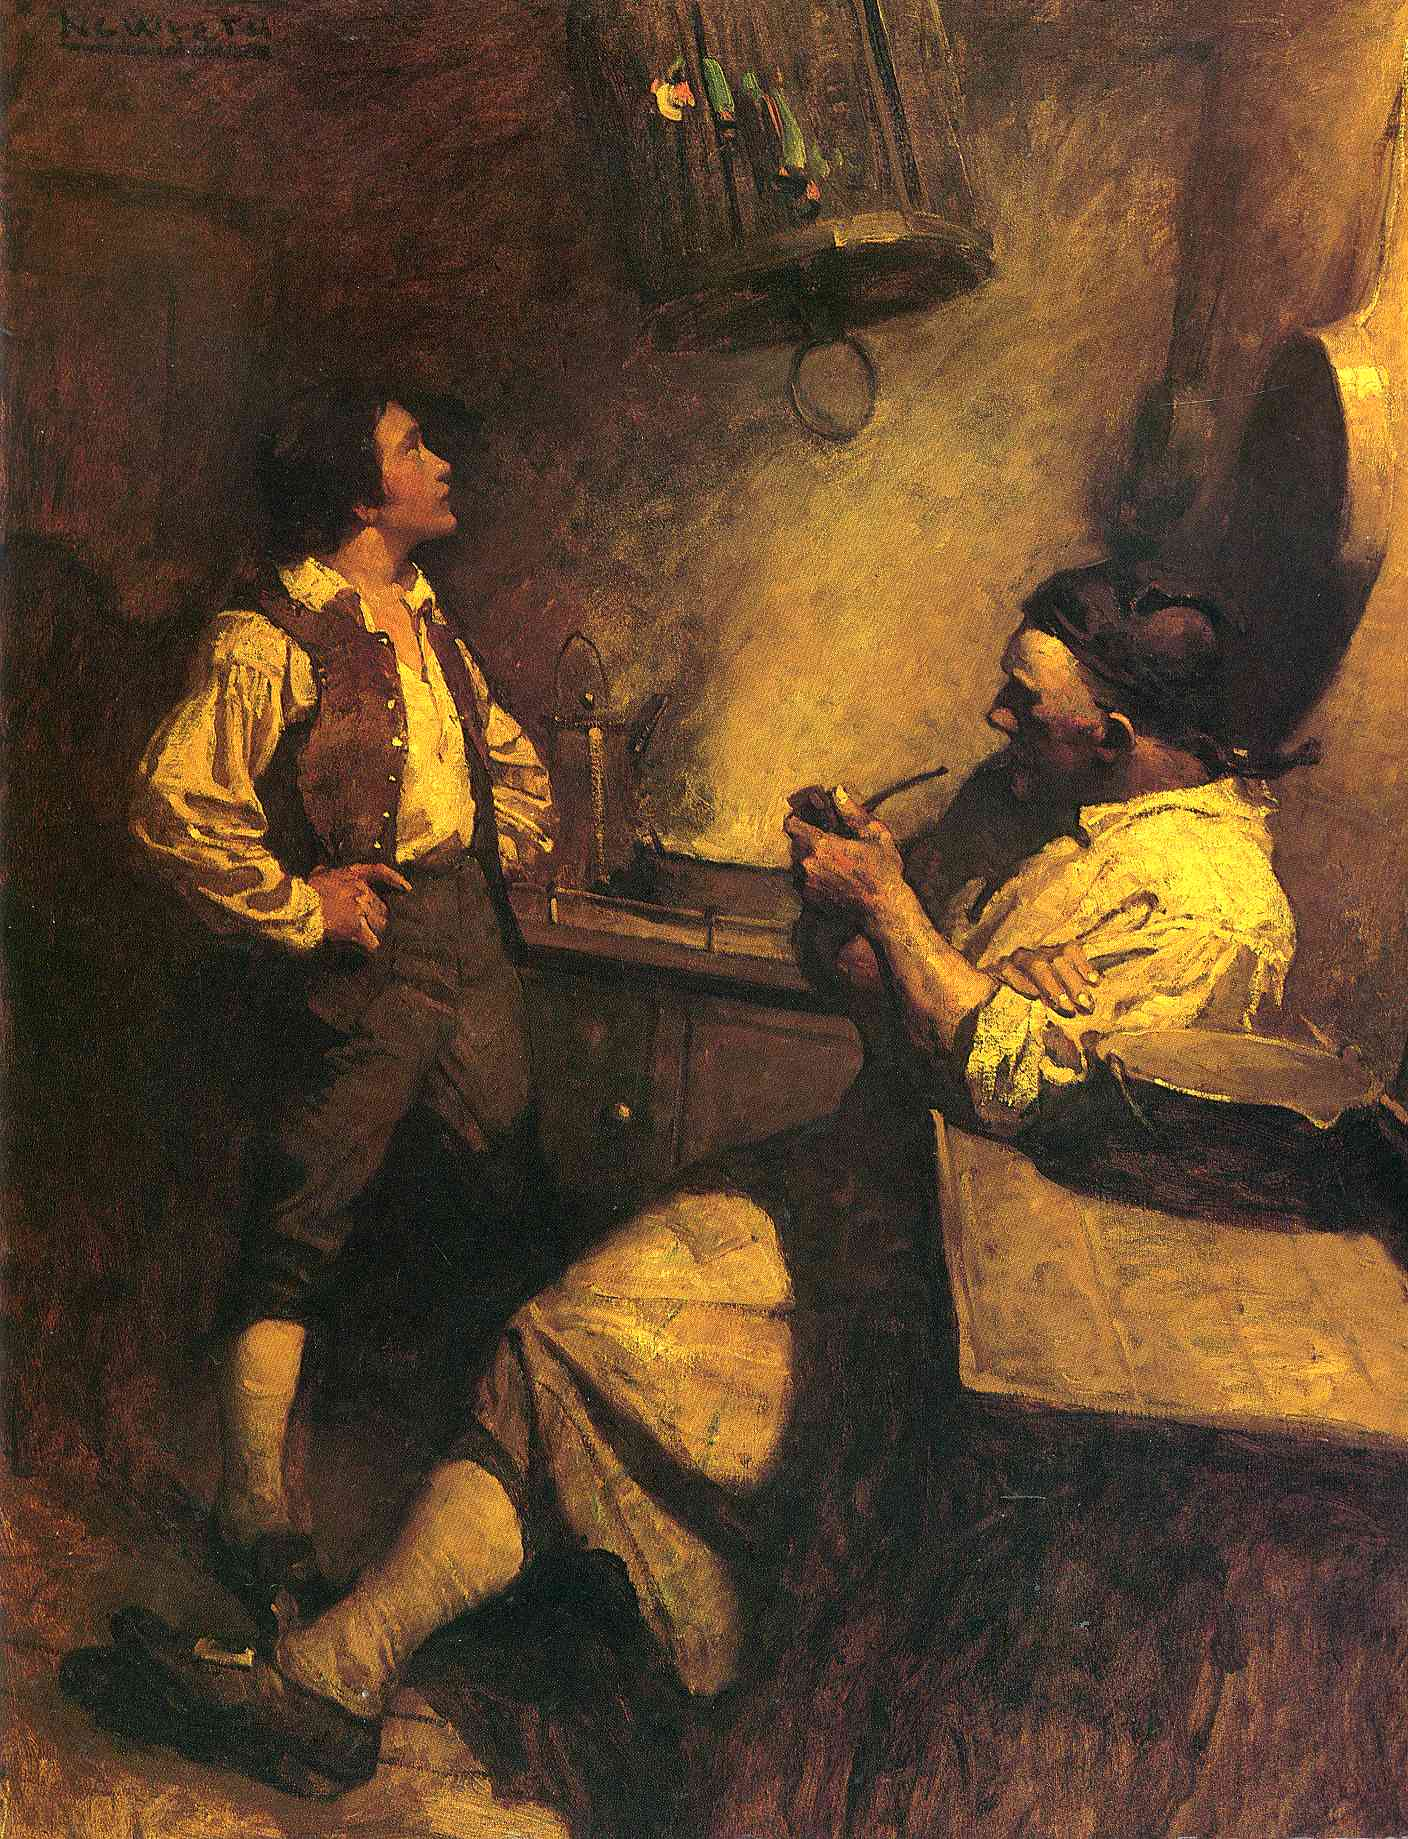 Jim hawkins long john silver and his parrot n c wyeth for What kind of fish does long john silver s use